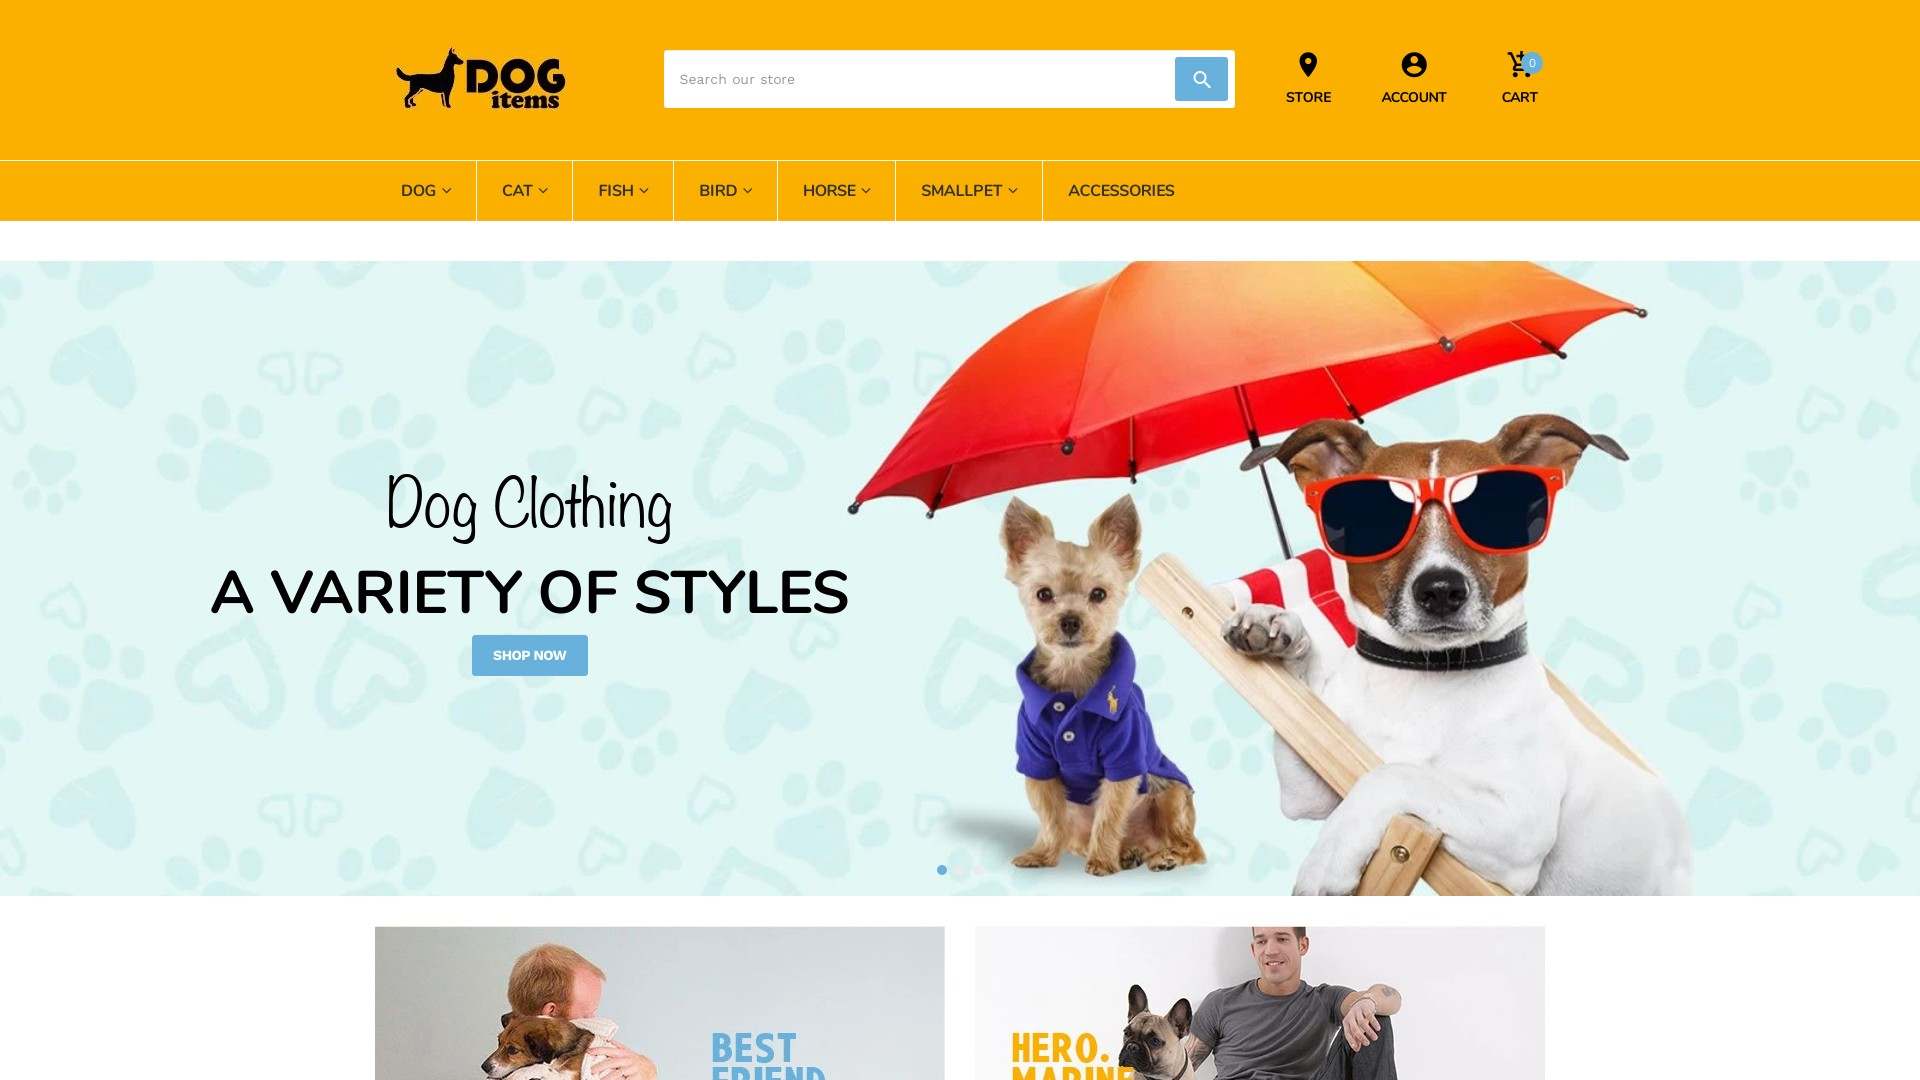 Is Dogitems a Scam? See the Review of the Pet Store